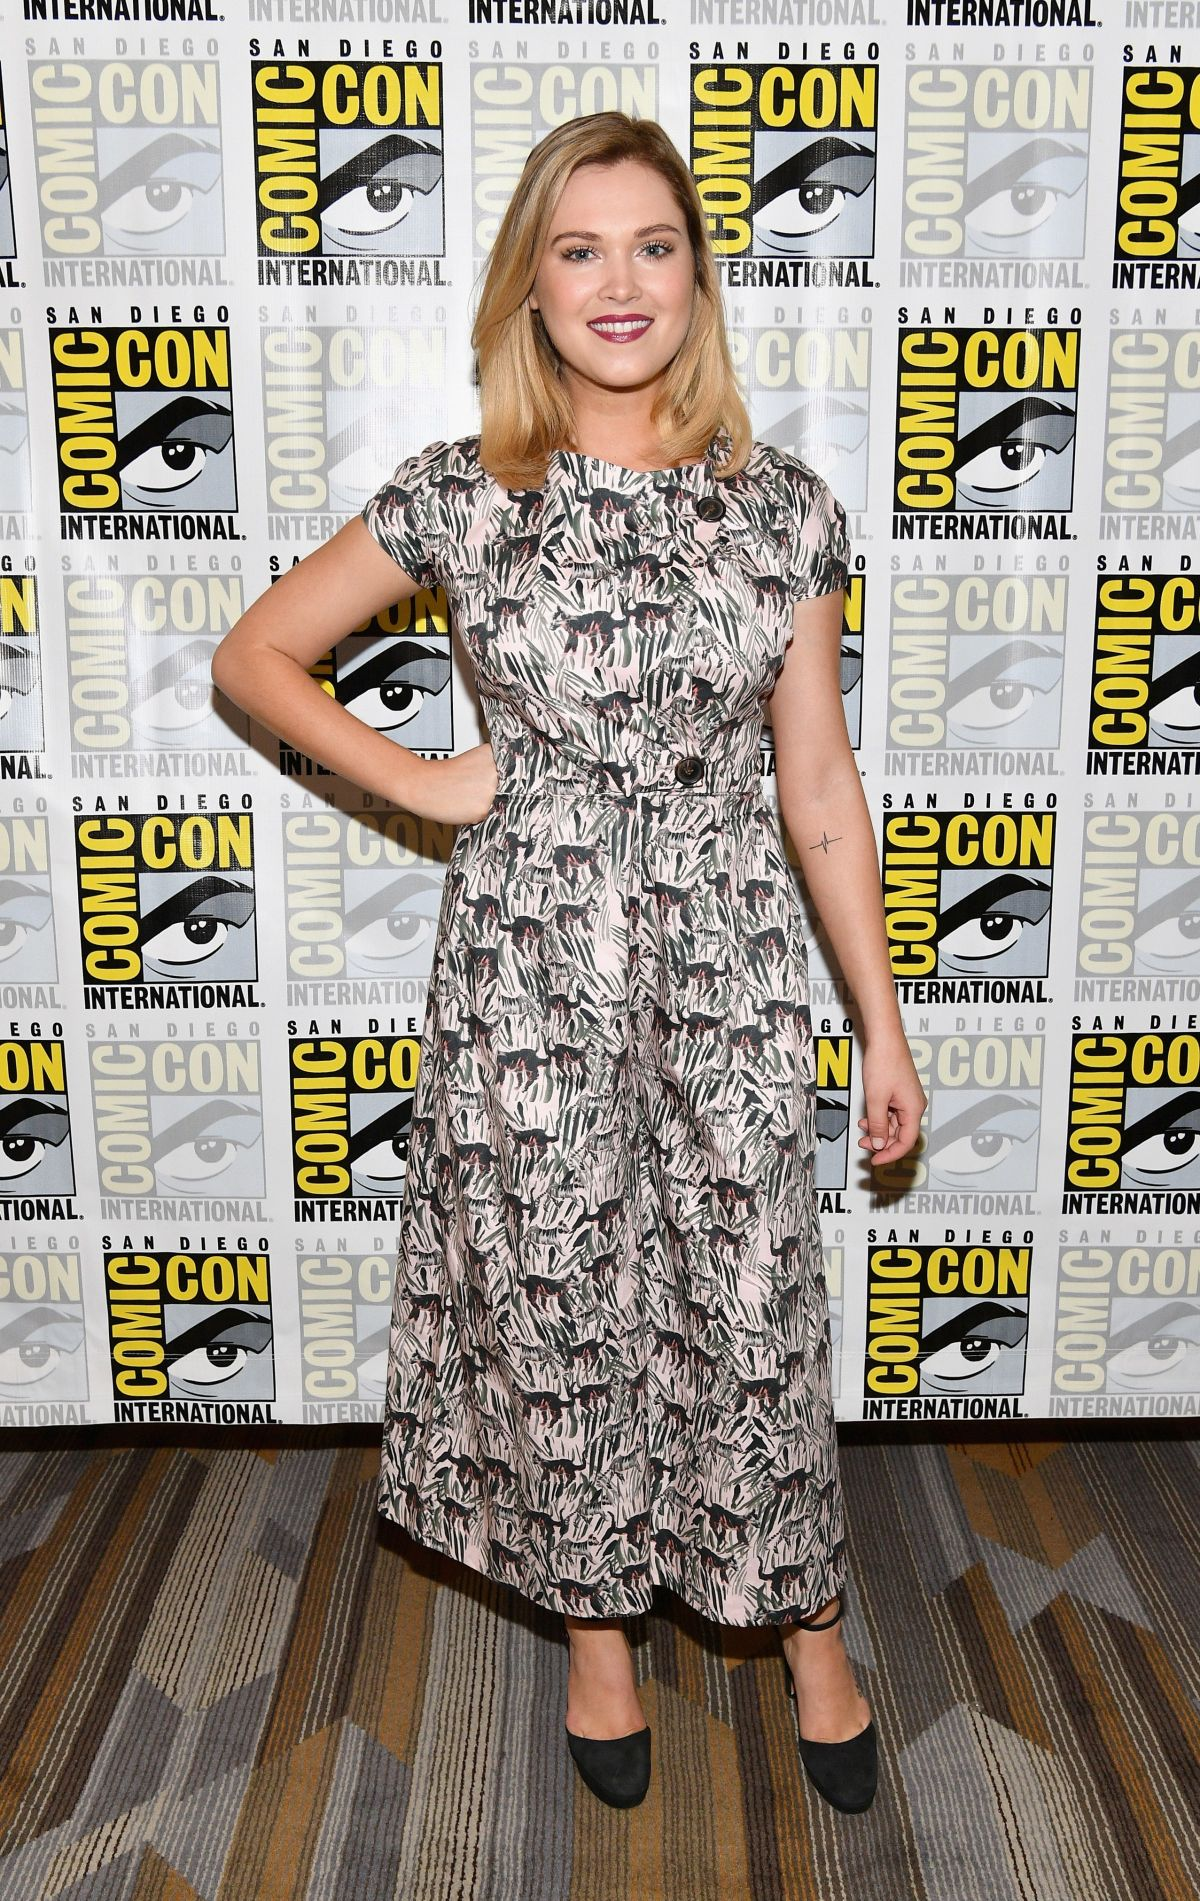 ELIZA TAYLOR at The 100 Press Line at Comic-con in San Diego 07/21/2017